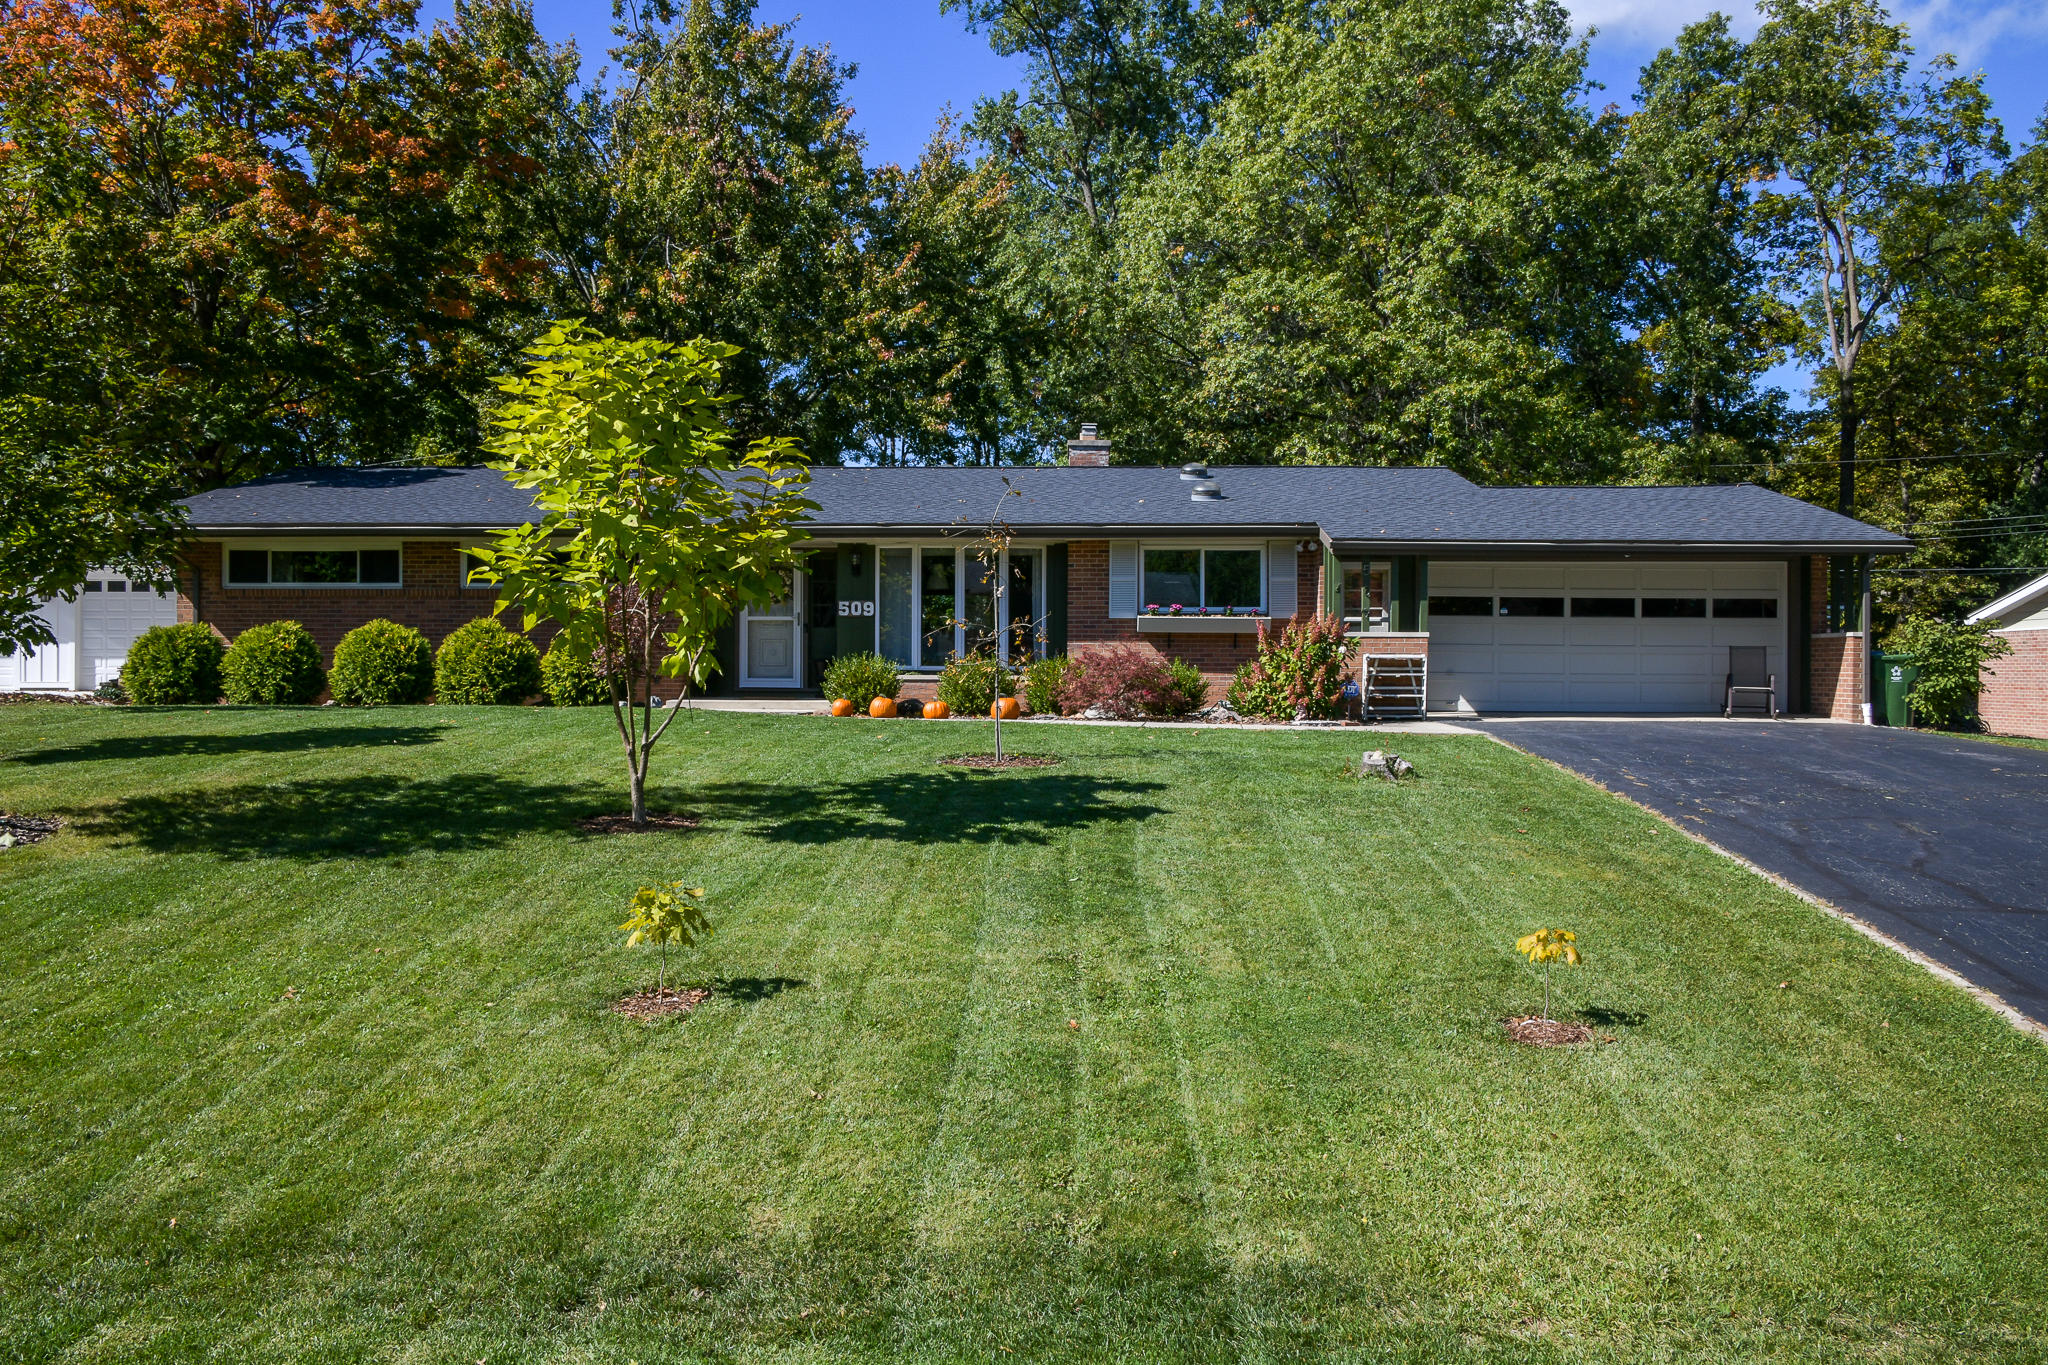 509 Hickory Drive Property Photo - Marysville, OH real estate listing